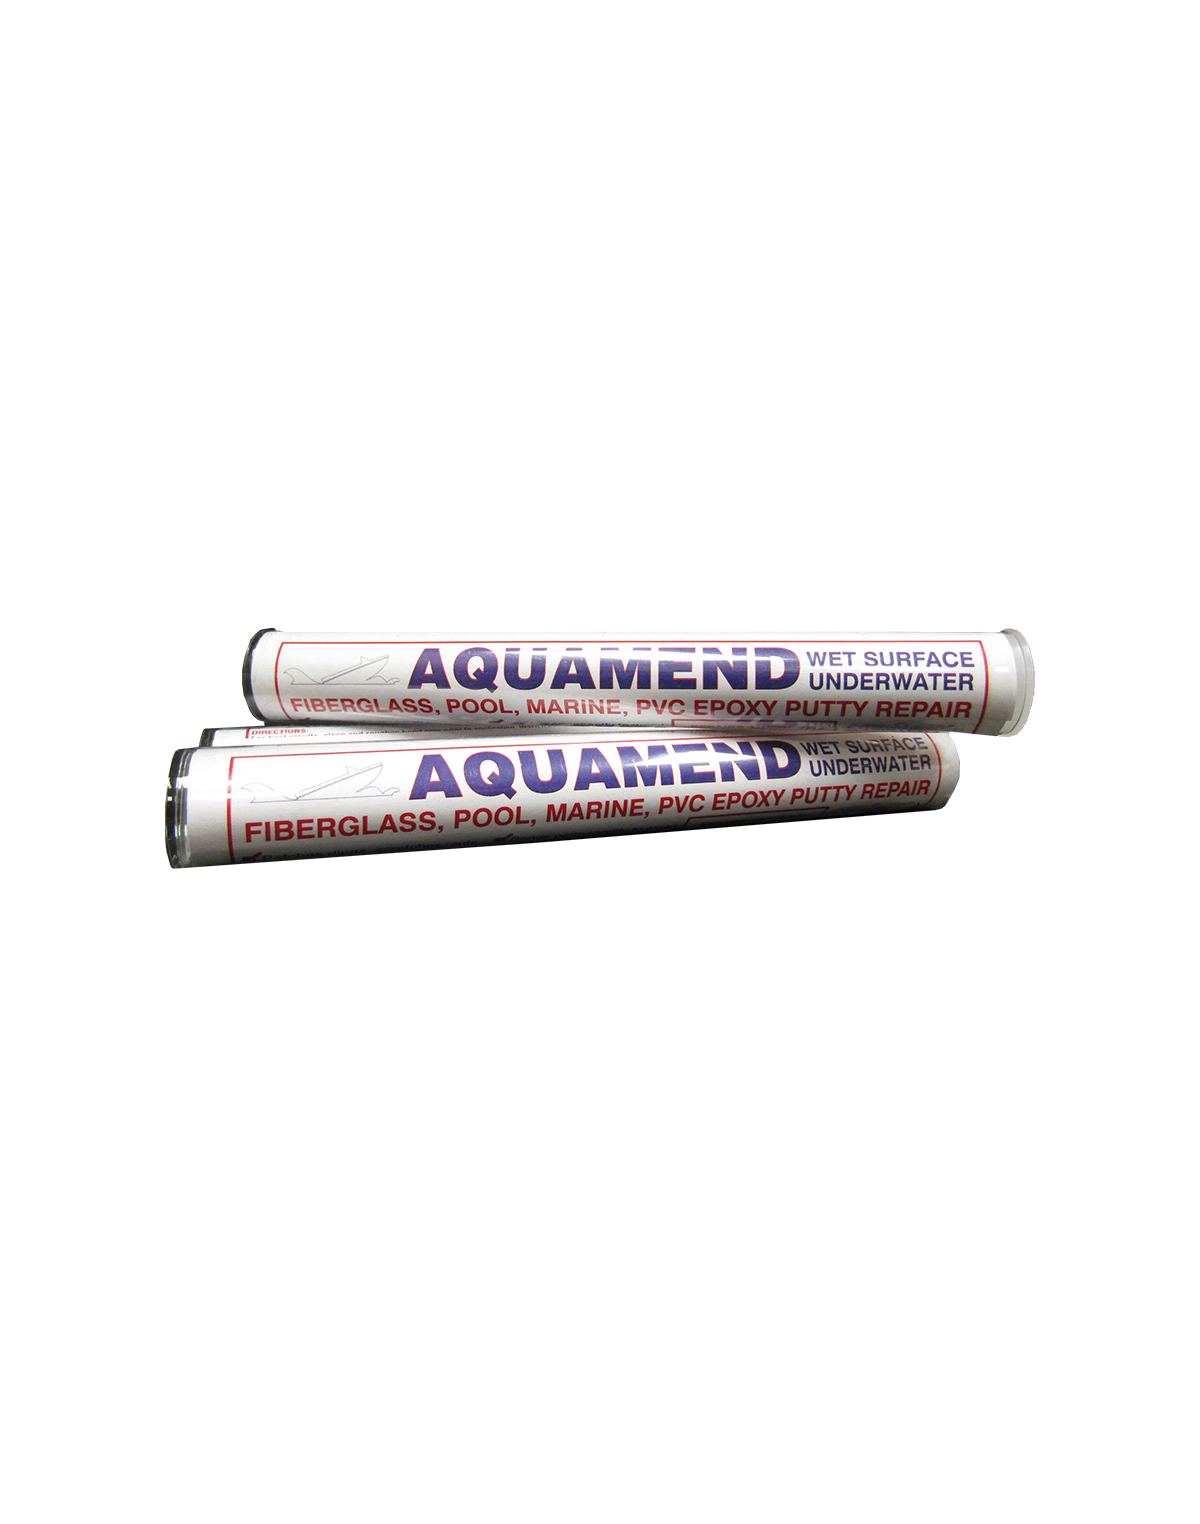 Aquamend Bucket - Nationwide Protective Coatings